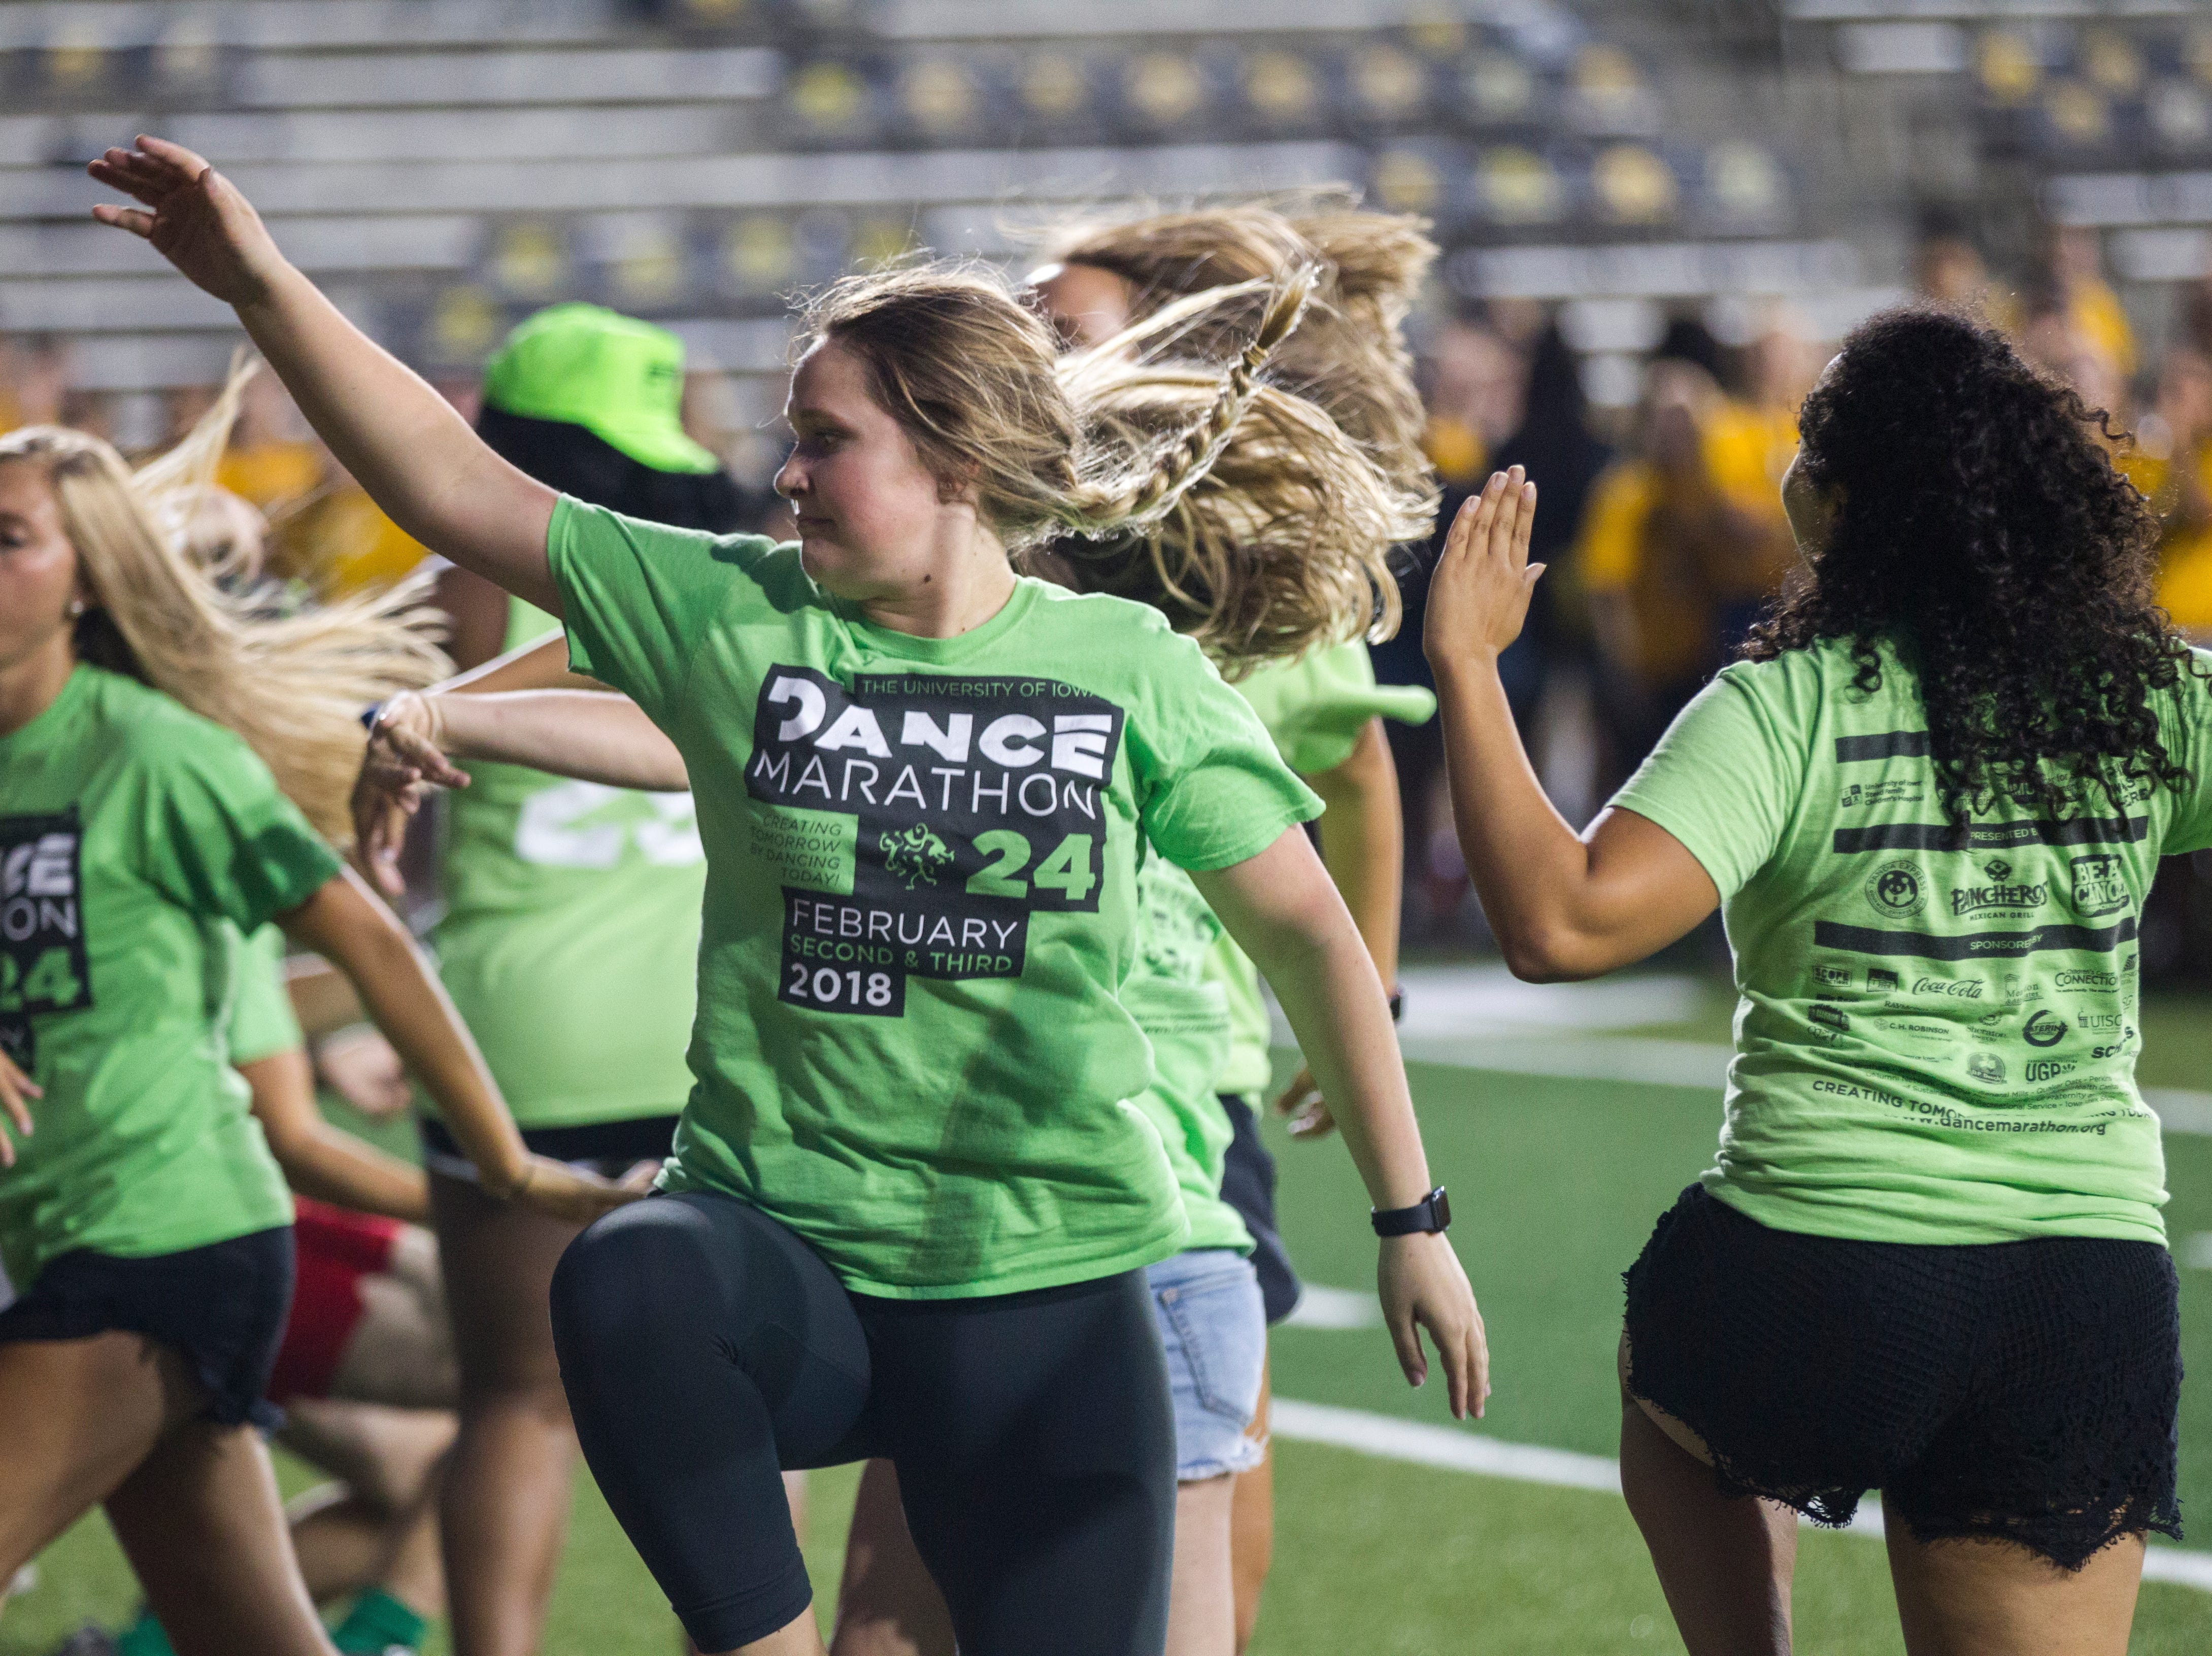 Amy Isebrand, of Le Mars, Iowa, dances with other members of Dance Maraton during an OnIowa event on Friday, Aug. 17, 2018, at Kinnick Stadium in Iowa City. The annual Kickoff at Kinnick allows new students a chance to walk on the field for their class photo.